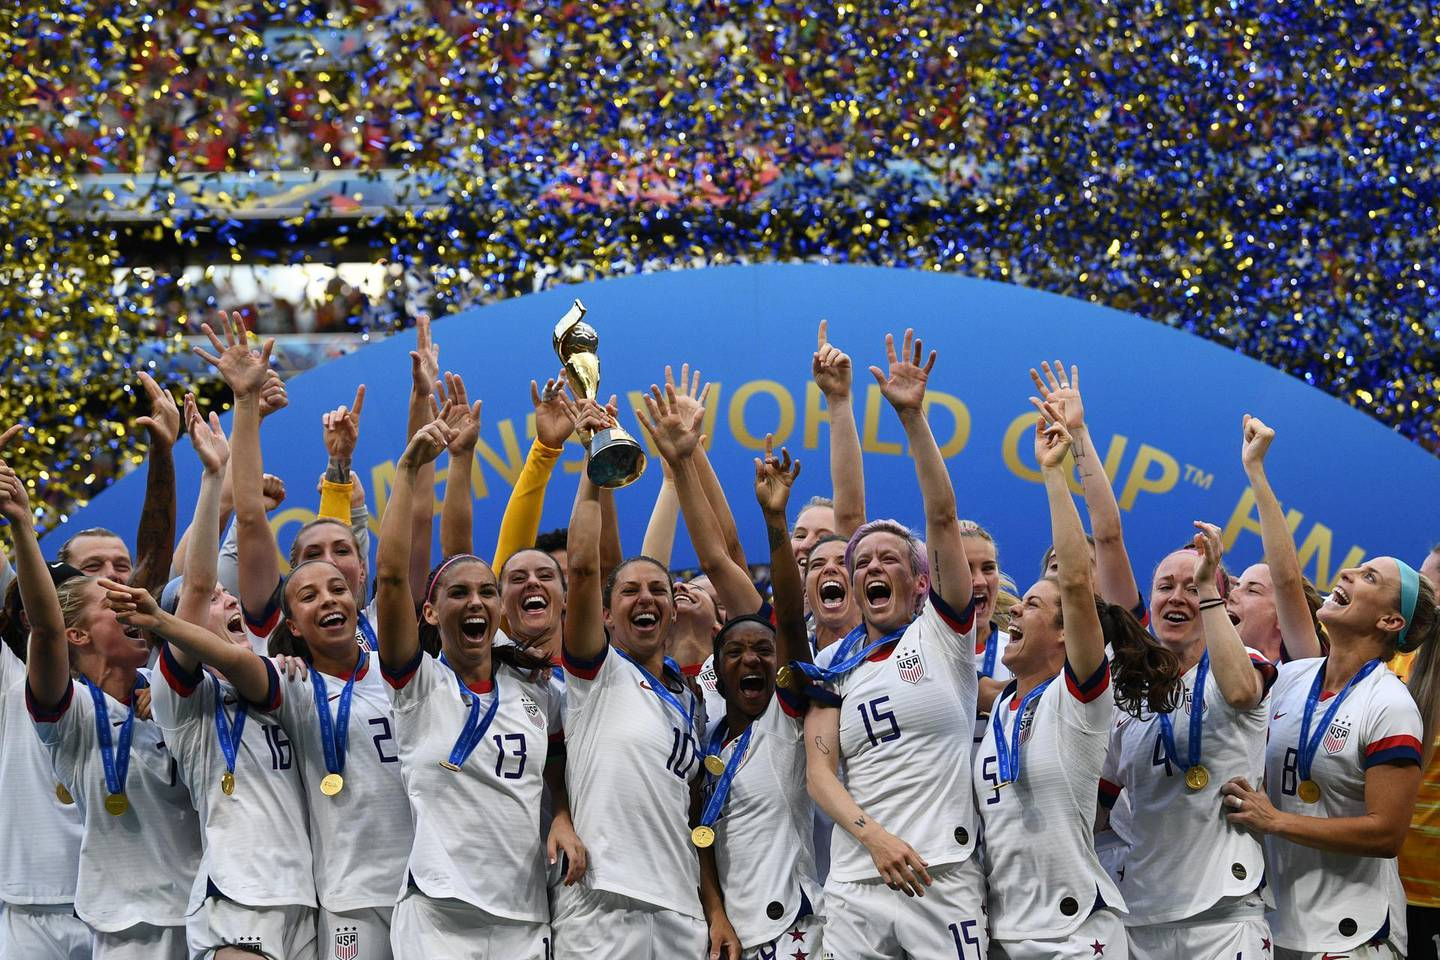 USA's players celebrate with the trophy after the France 2019 Women's World Cup football final match between USA and the Netherlands, on July 7, 2019, at the Lyon Stadium in Lyon, central-eastern France. (Photo by FRANCK FIFE / AFP)